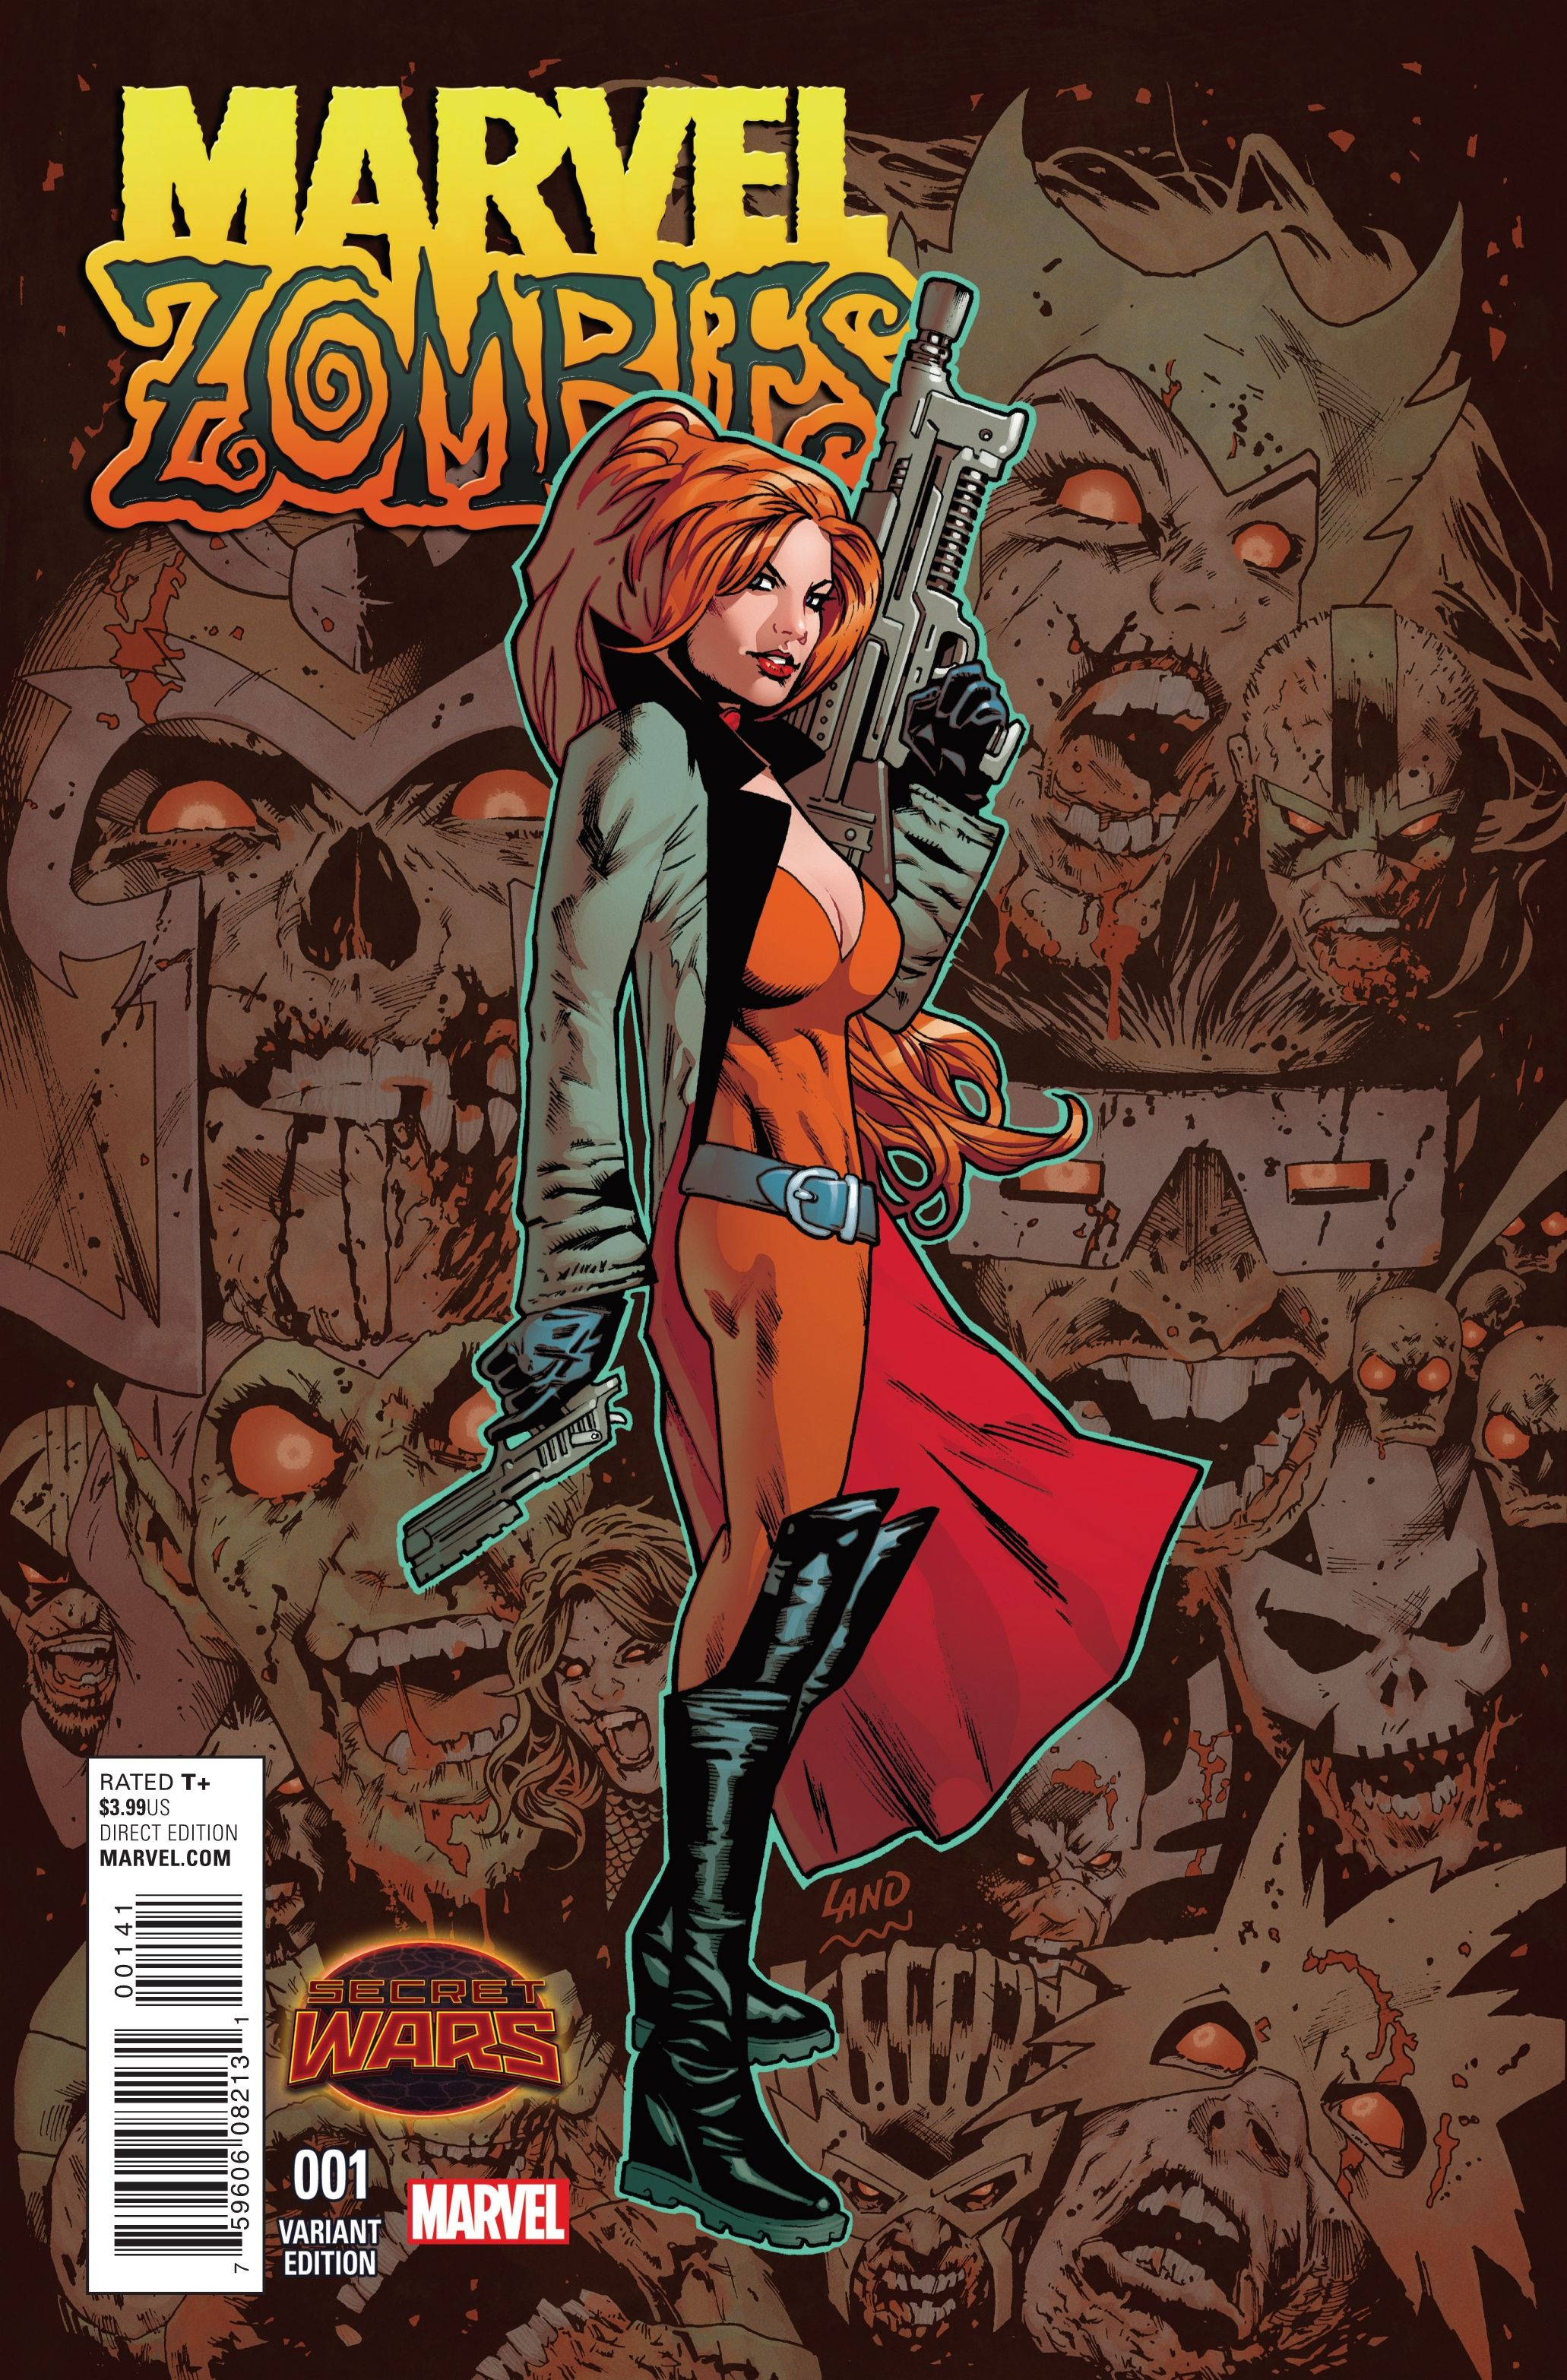 Marvel Zombies #1, by Simon Spurrier, Kev Walker and Frank D'Armata Okay,  so story time. There once was a little book called X-Men Legacy from one of  the ...